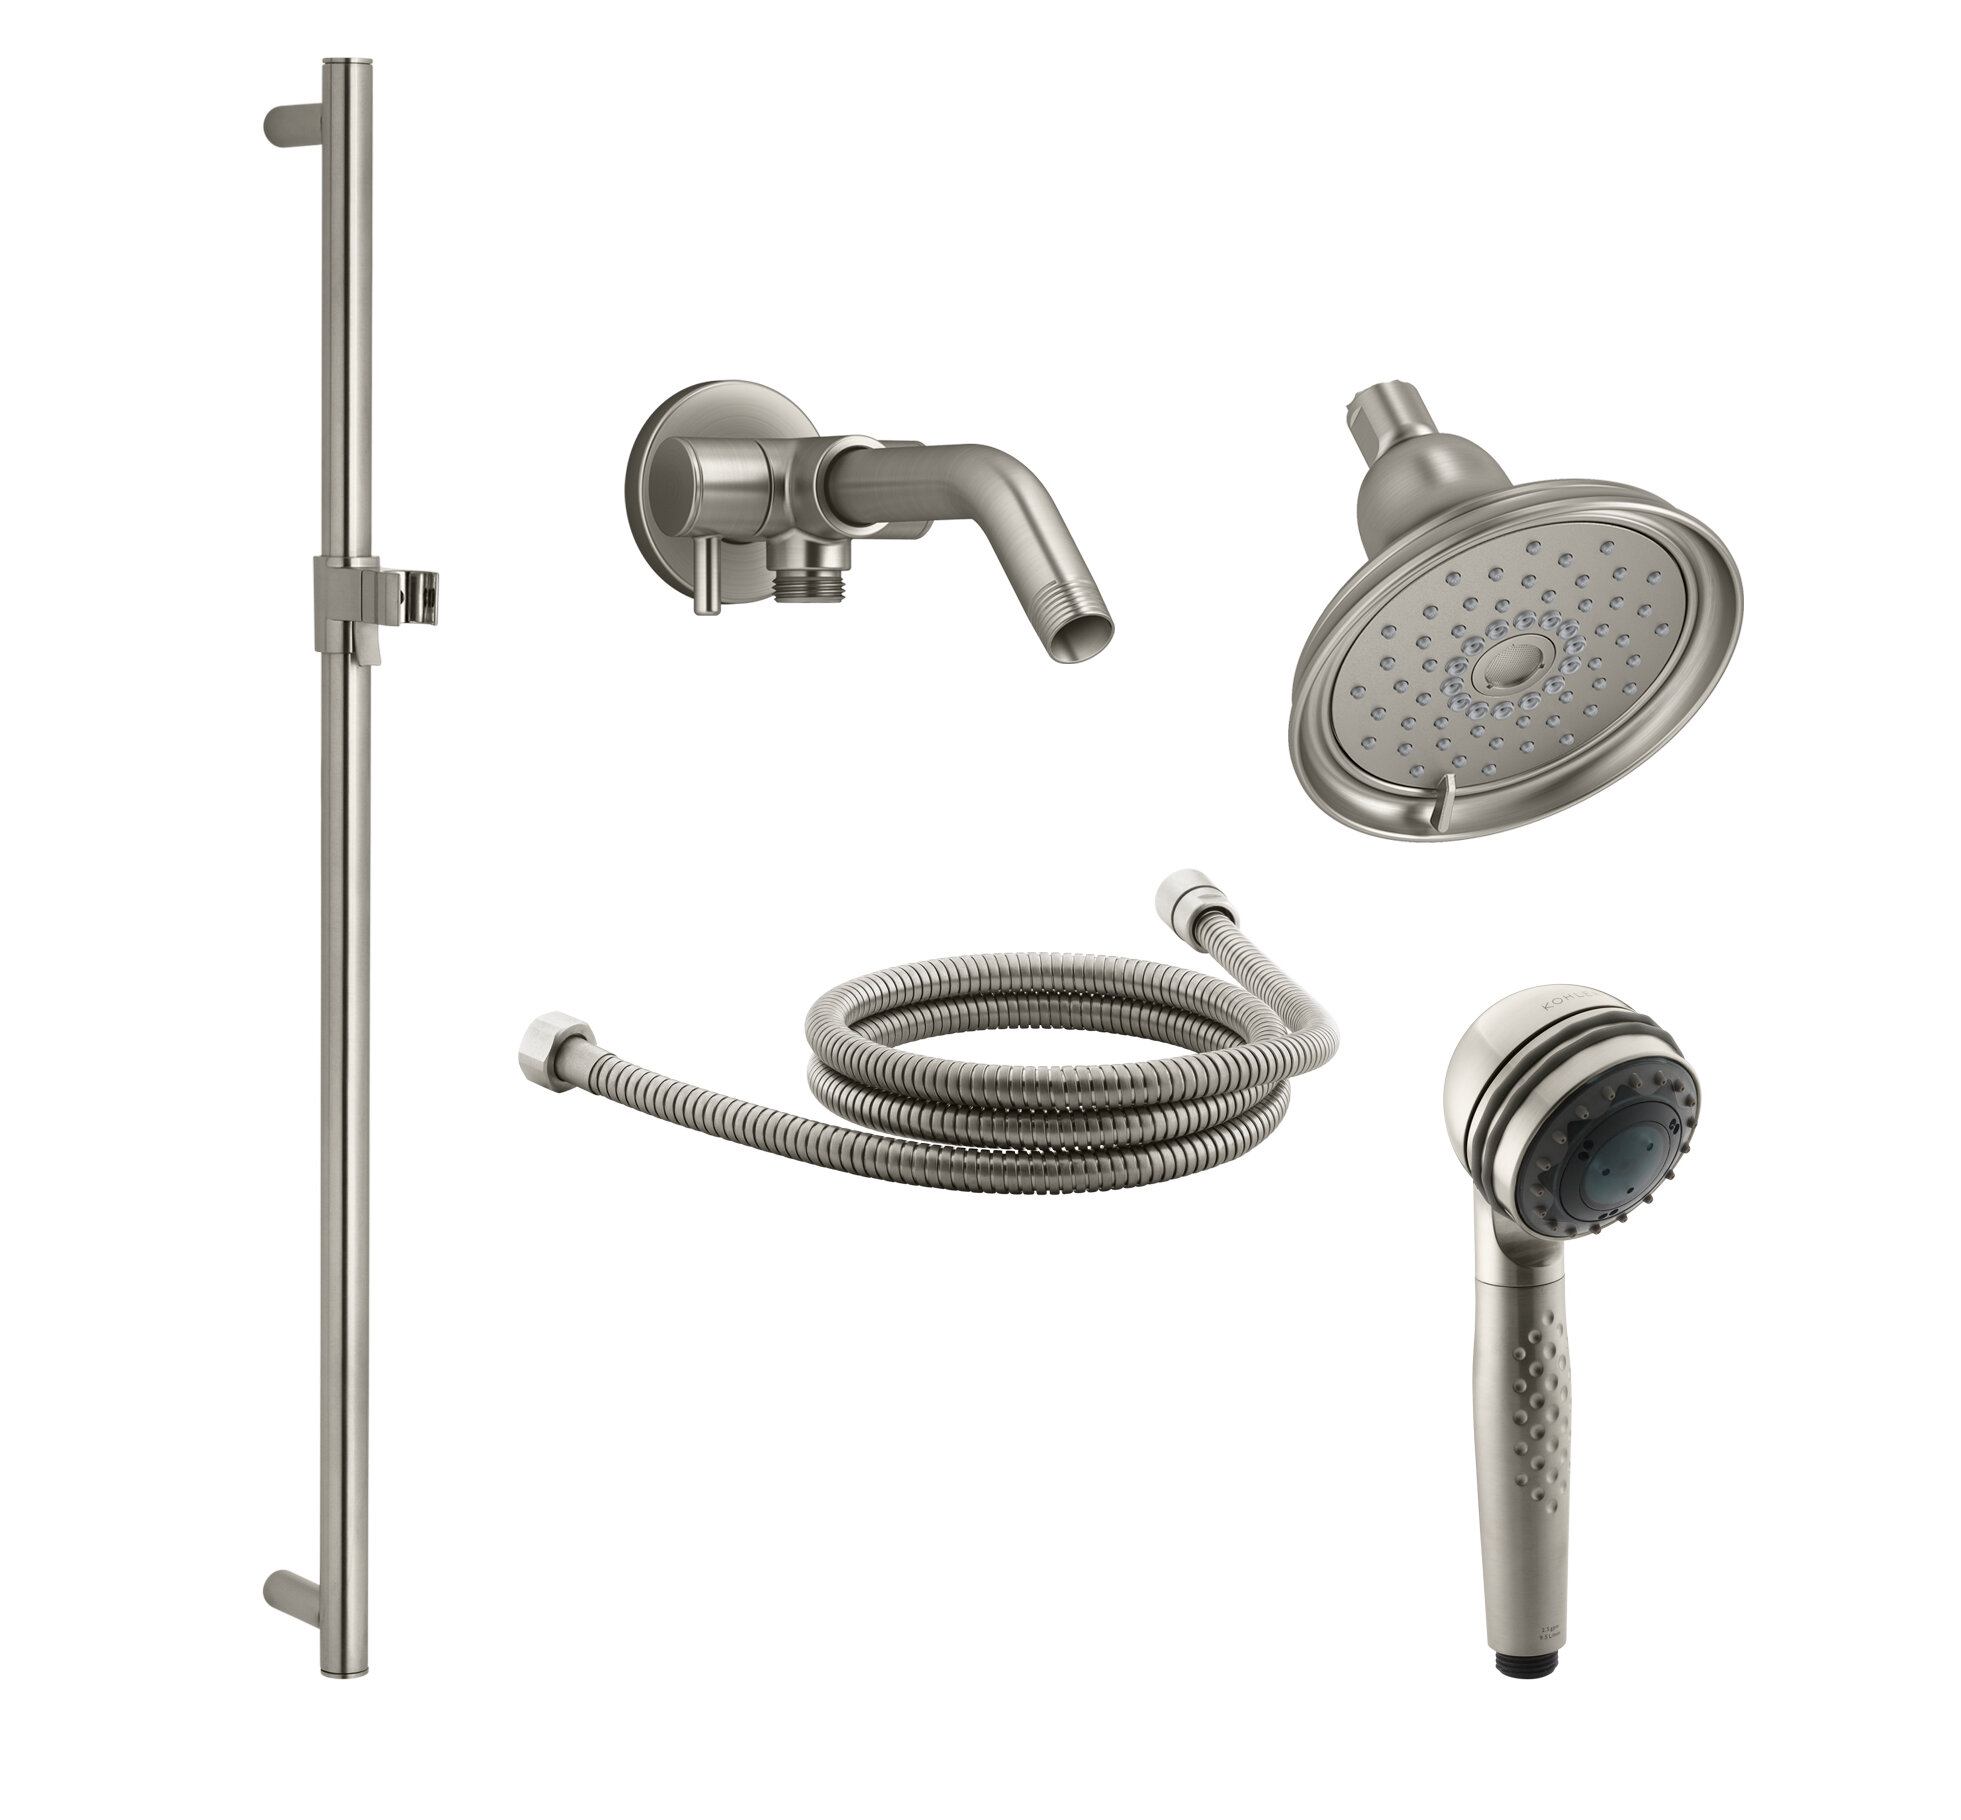 Kohler Bancroft Showering Kit With Multi Function Handshower And Shower Arm Diverter With Rough In Valve